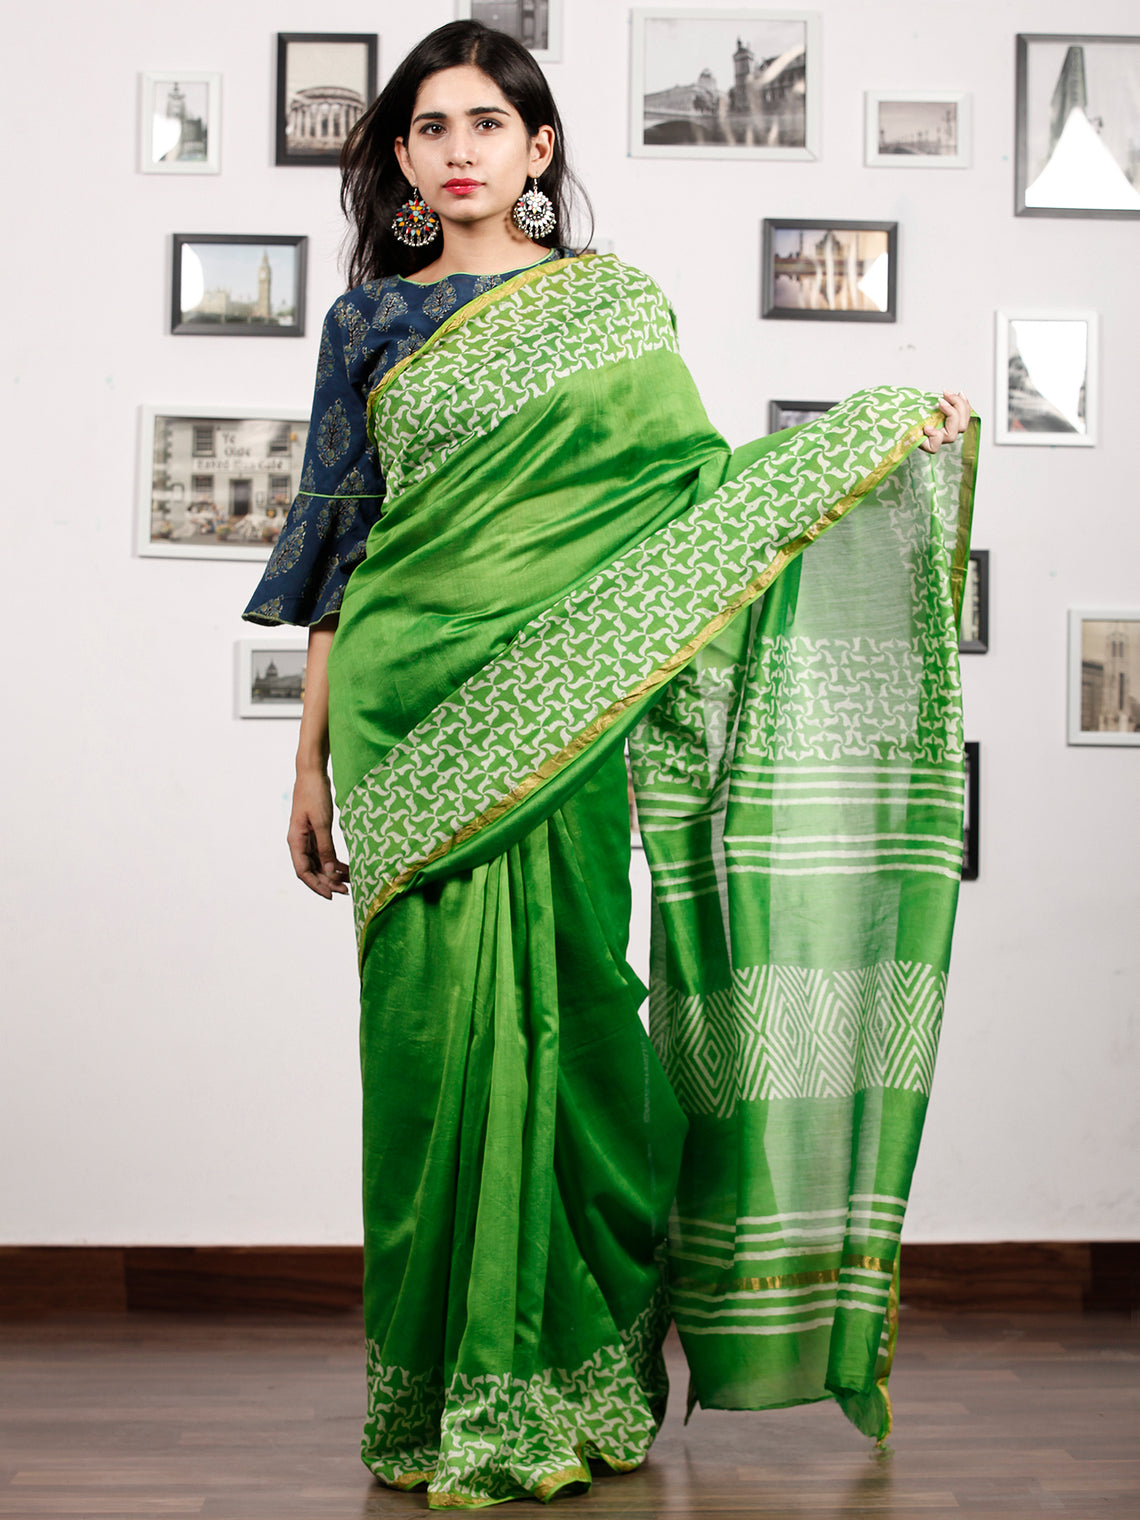 Green White Chanderi Silk Hand Block Printed Saree With Zari Border - S031703183